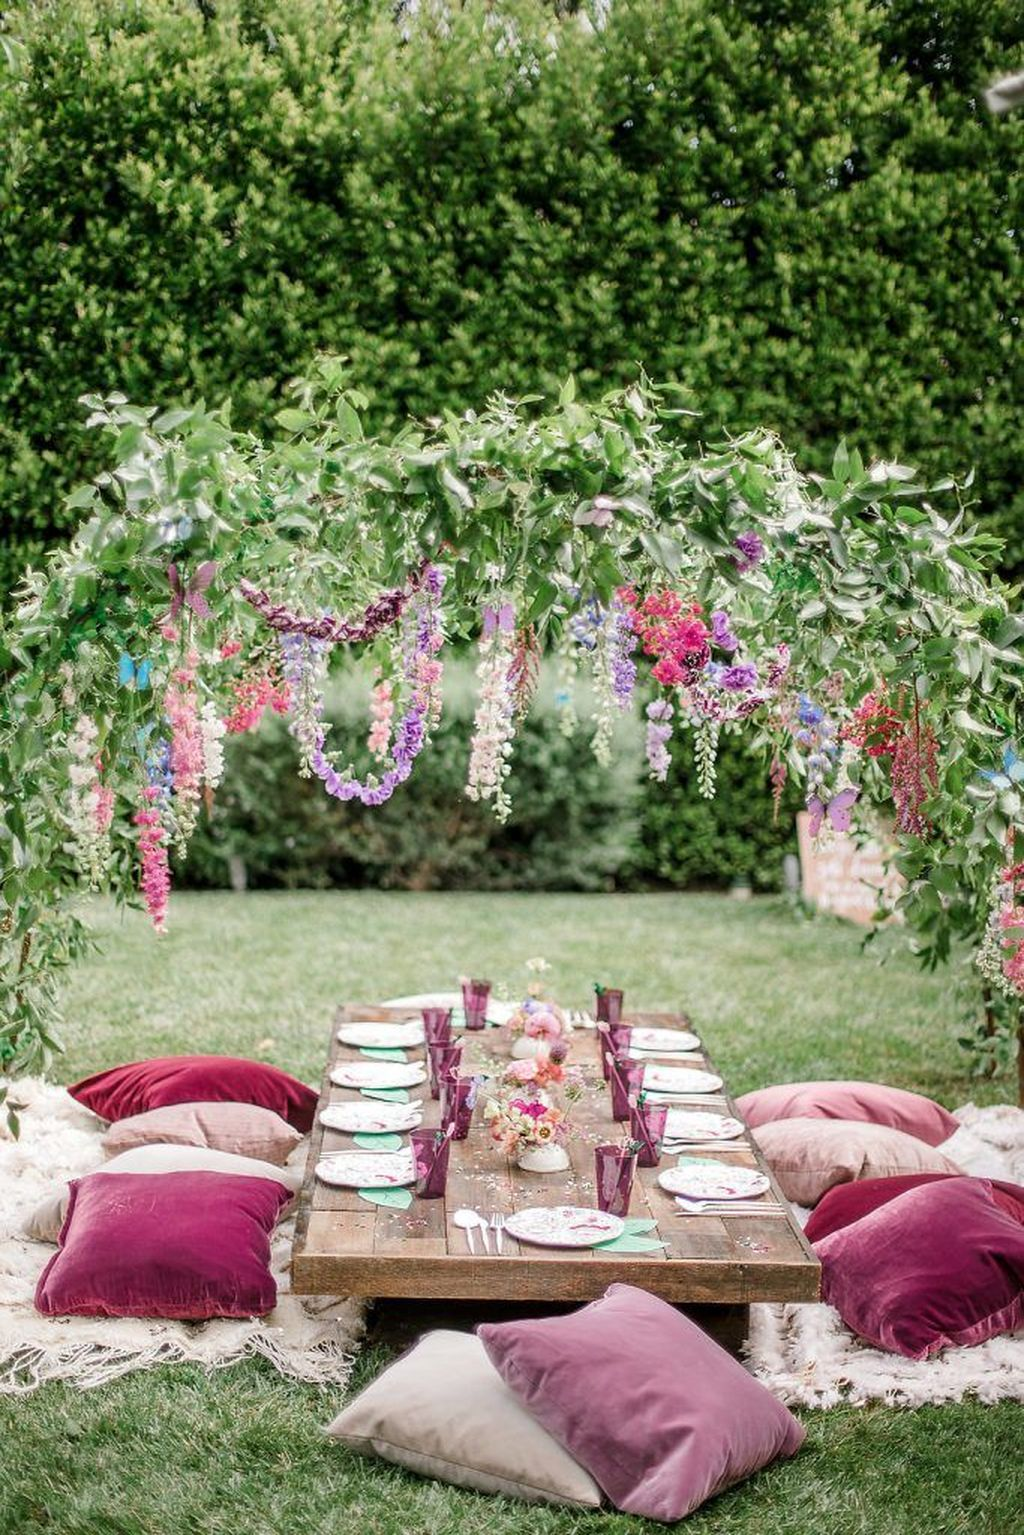 Fabulous Floral Theme Party Decor Ideas Best For Summertime 27